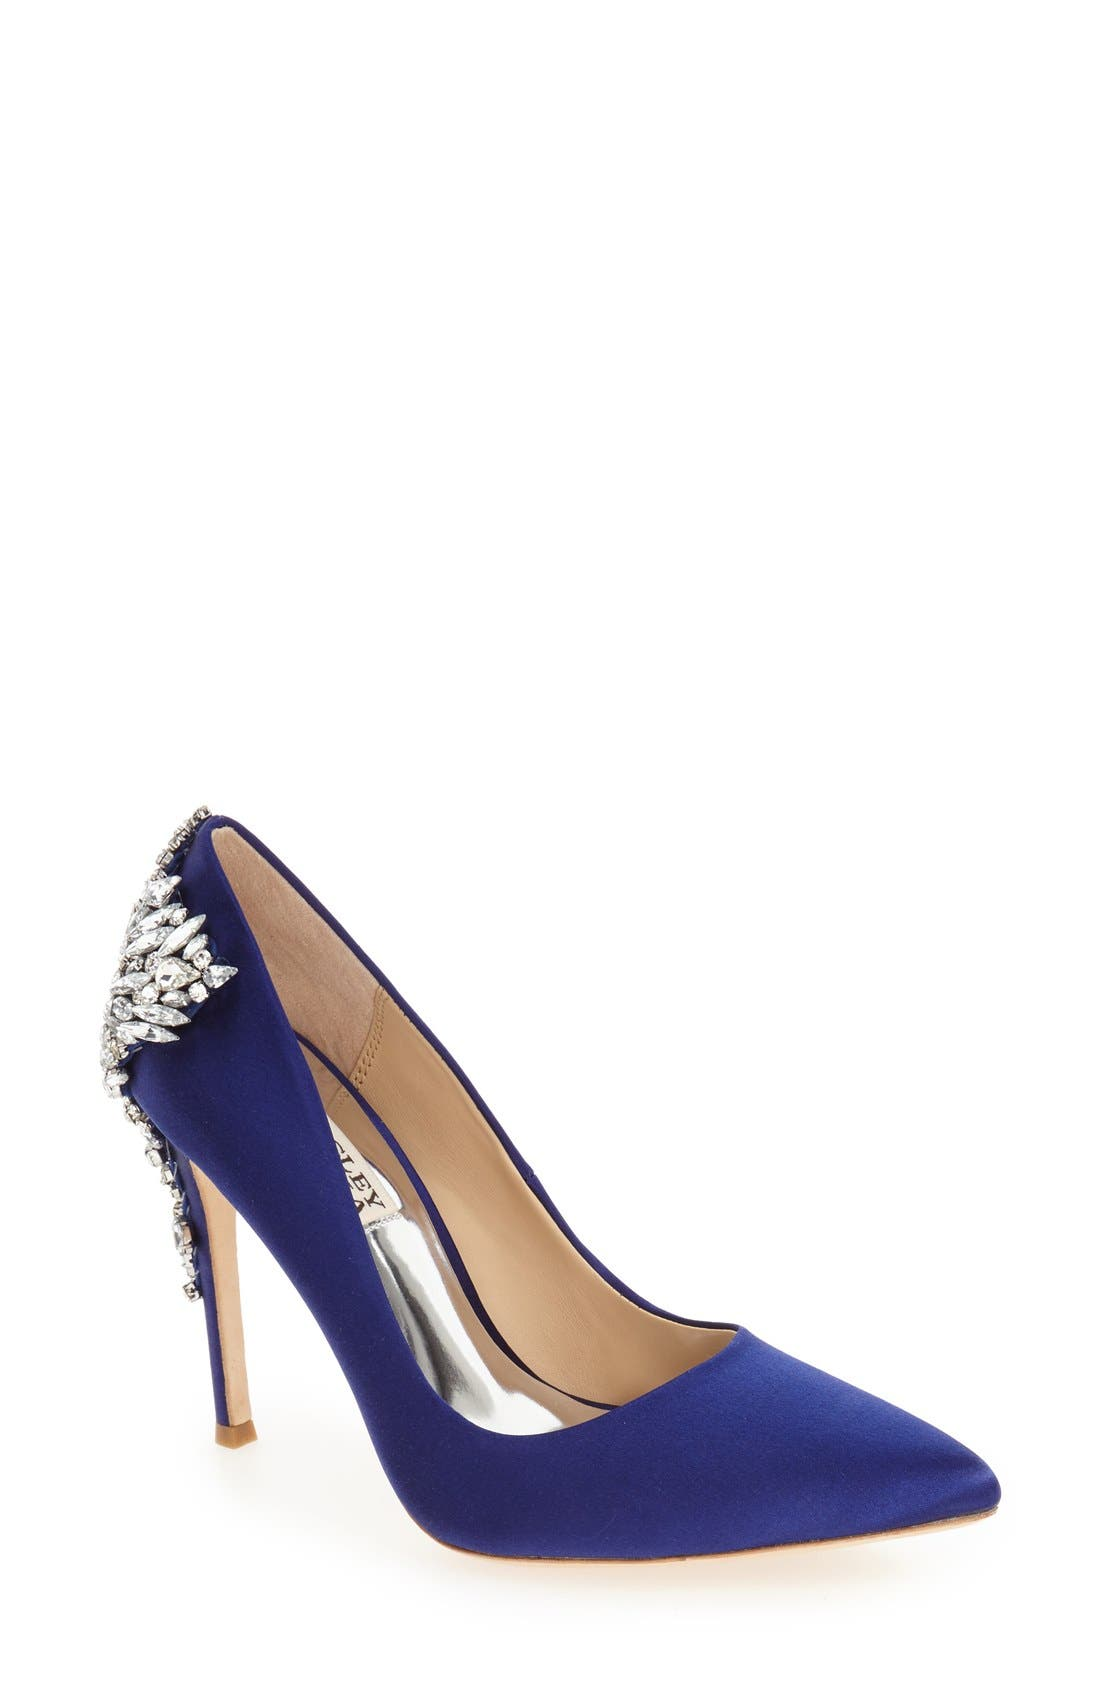 Alternate Image 1 Selected - Badgley Mischka 'Gorgeous' Crystal Embellished Pointy Toe Pump (Women)